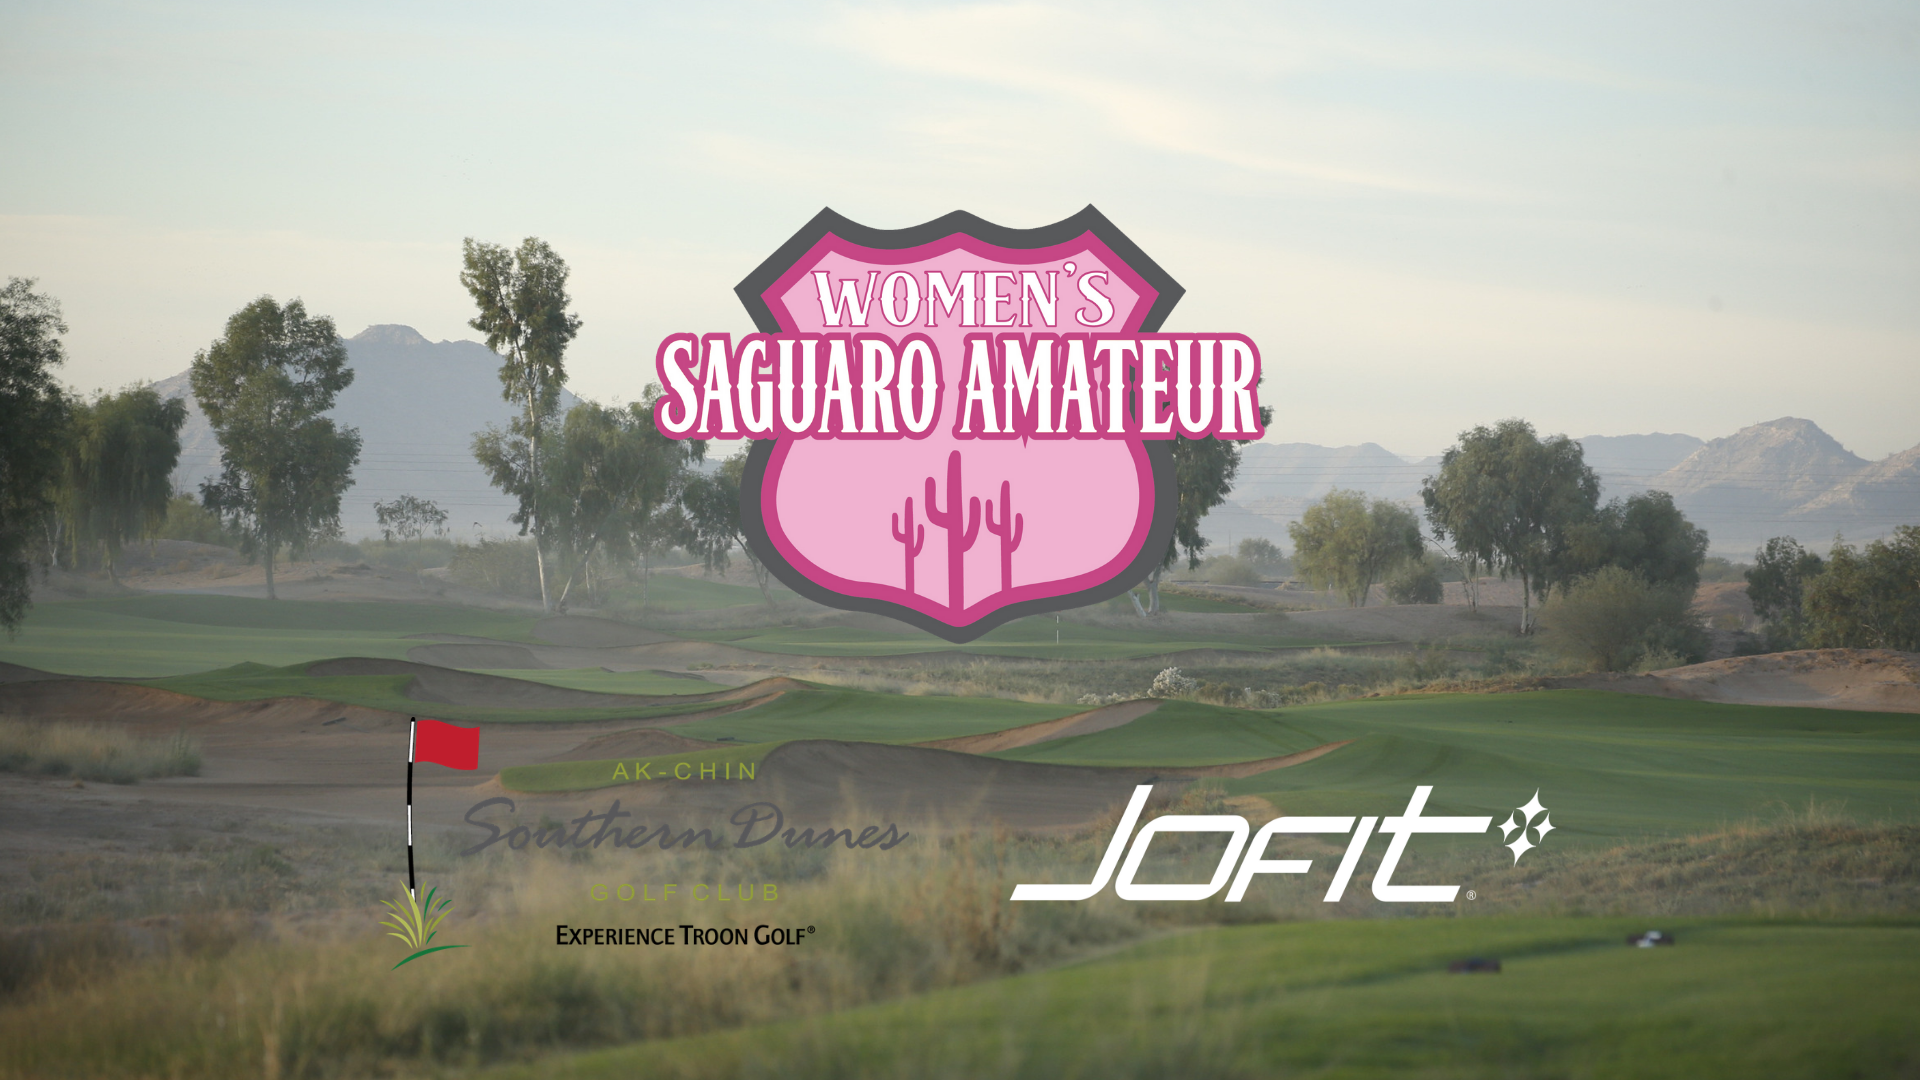 TROON SAGUARO AMATEUR SERIES ADDS  WOMEN'S SAGUARO AMATEUR TO 2019 SCHEDULE